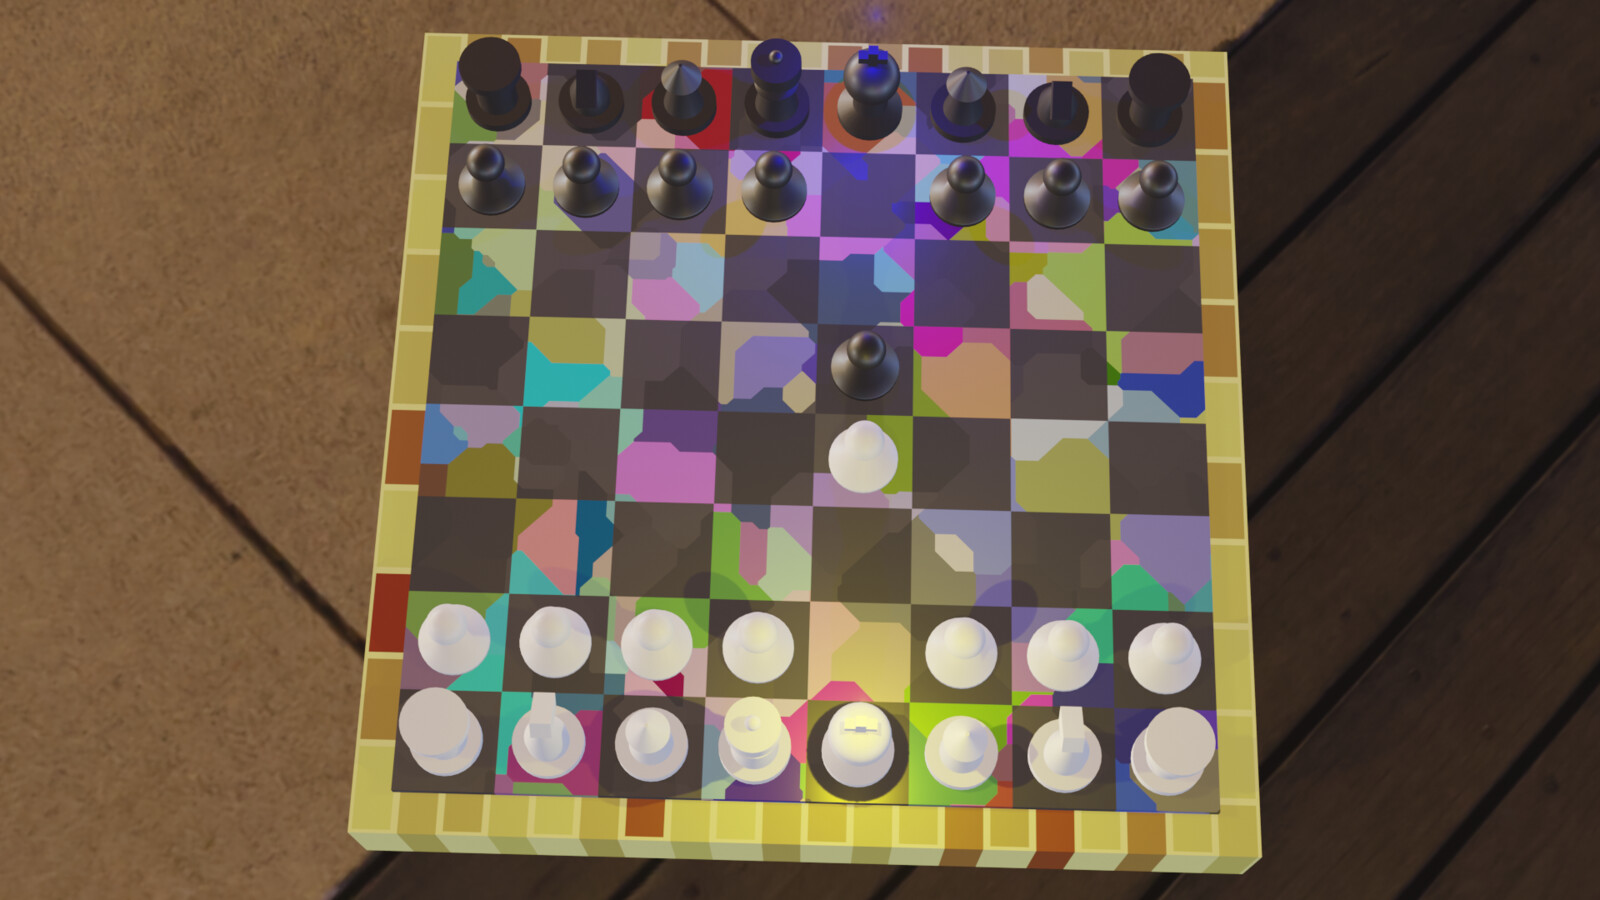 still frame. The colorful blobs extend to the black material in the checkers due to the factor being input into the roughness of the plane.